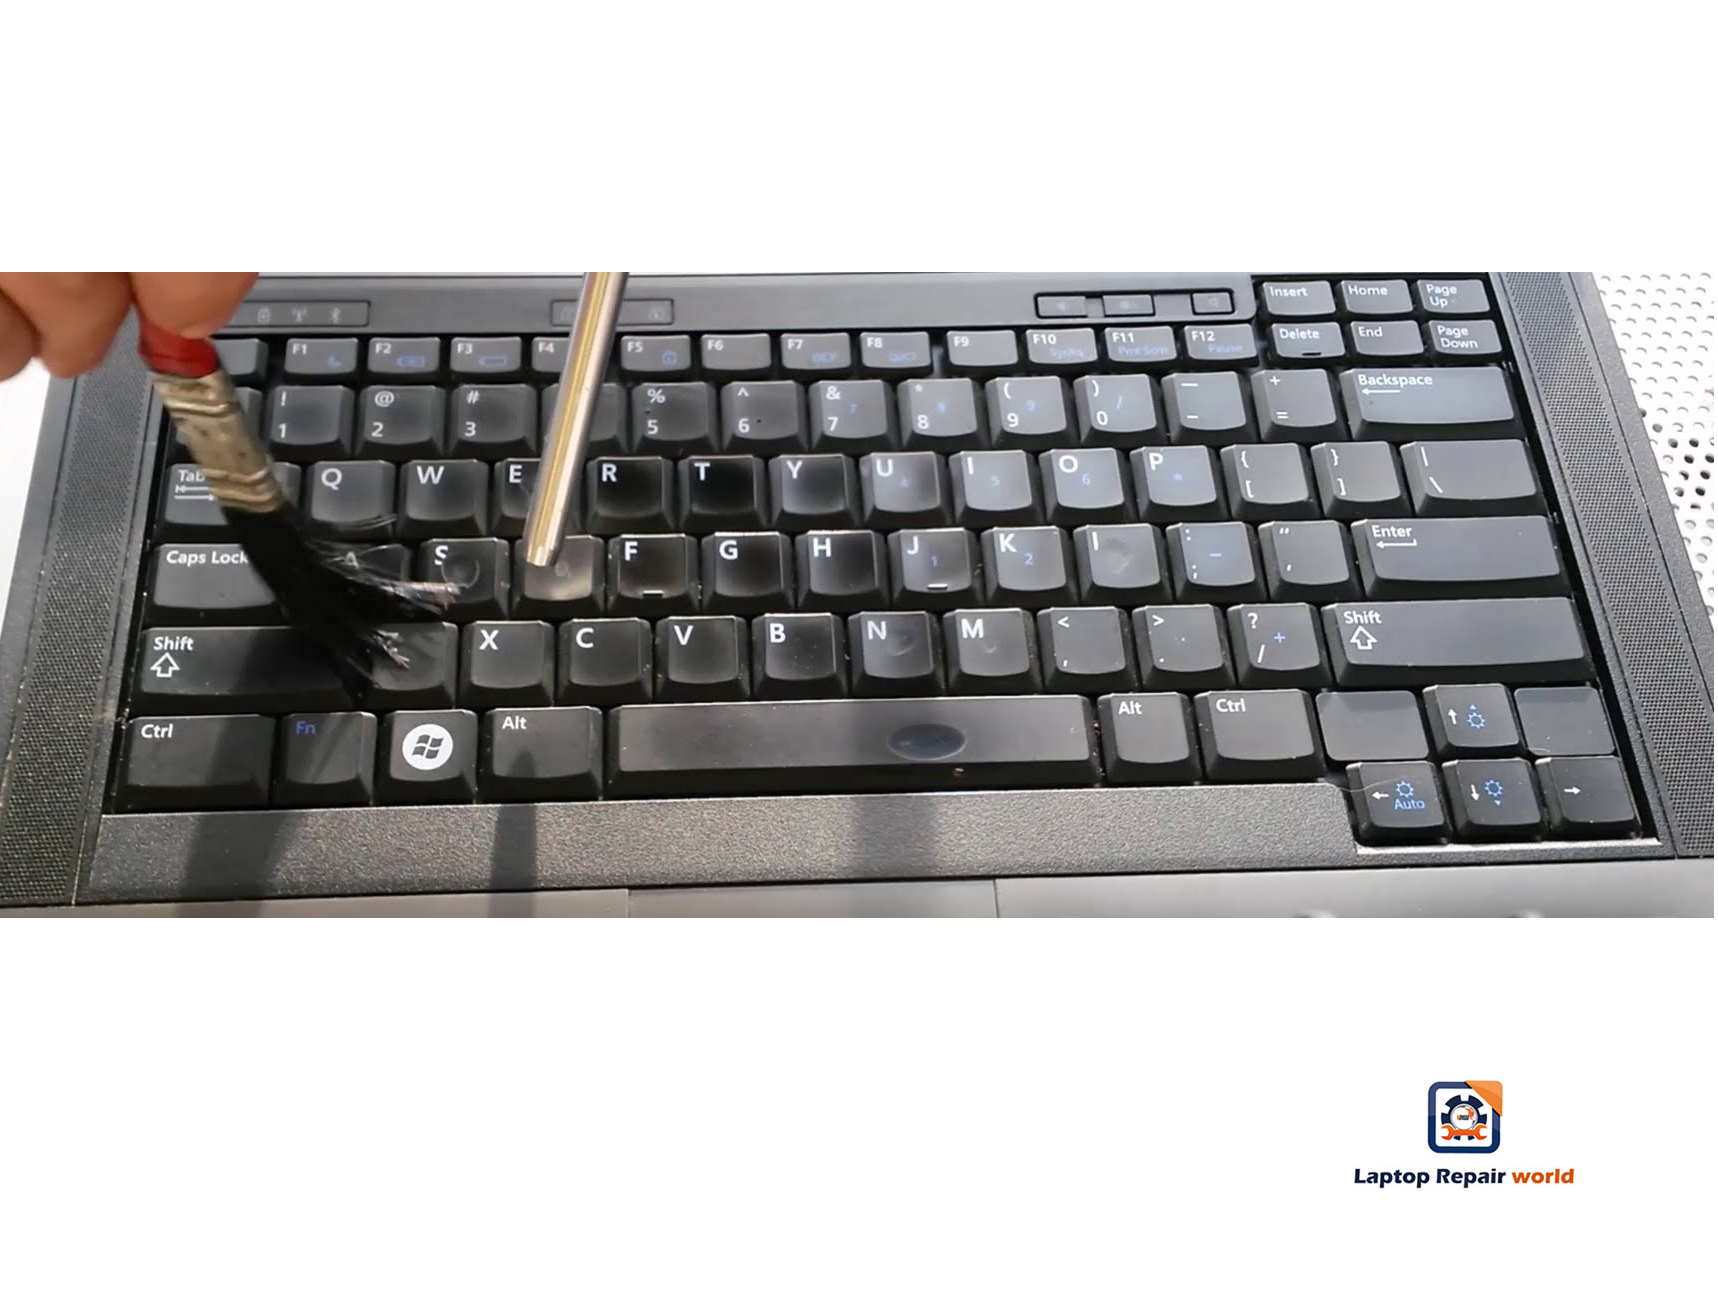 How to Keep Your Keyboard Clean? - Laptop Repair World